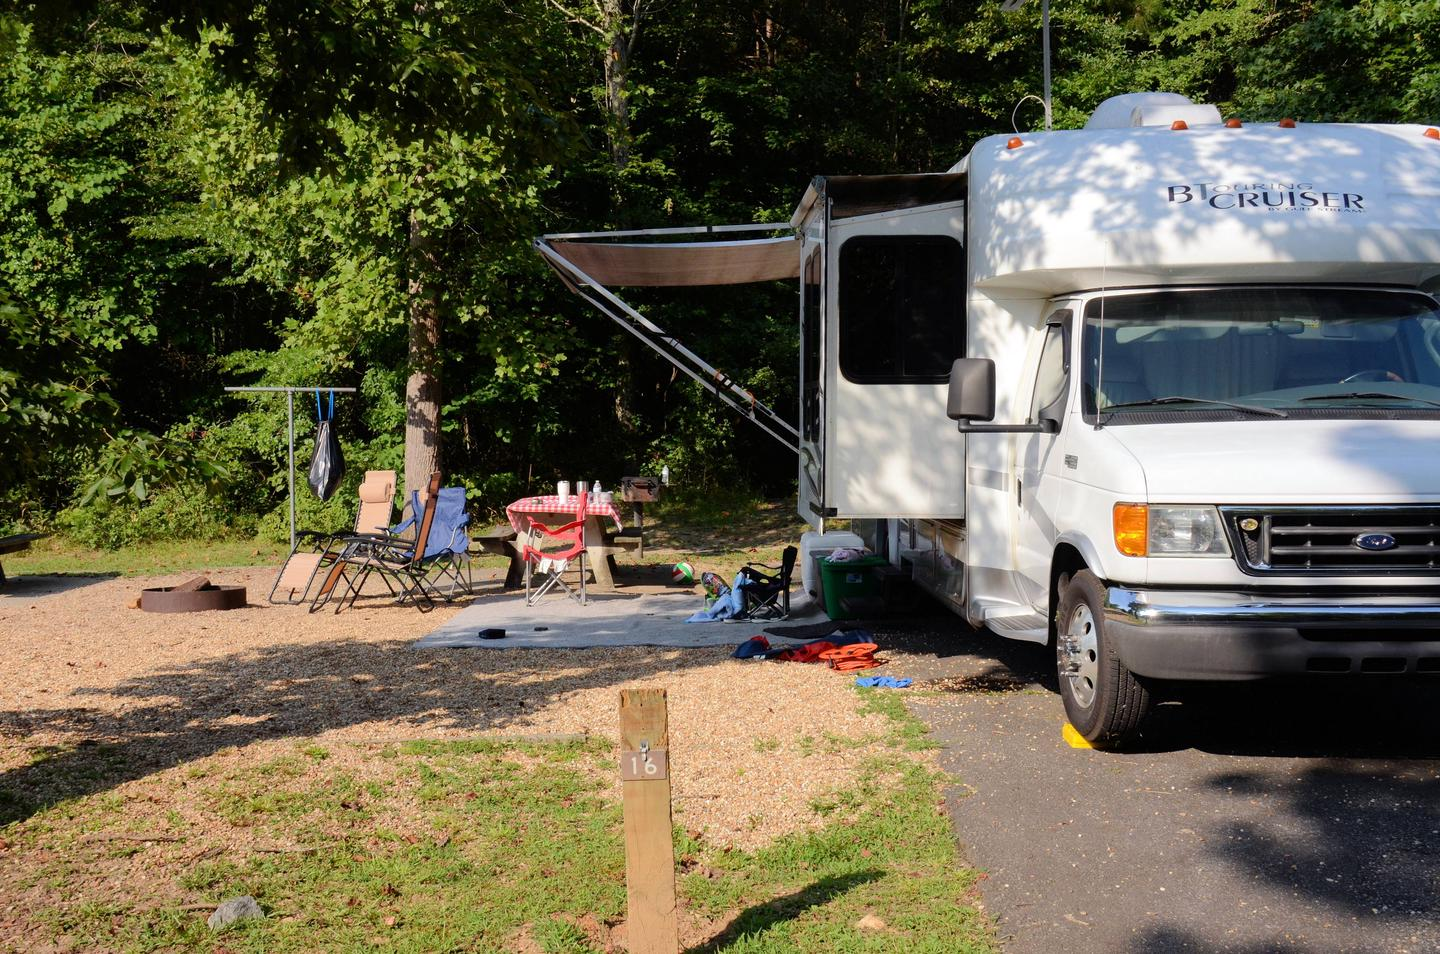 Awning-side clearance, campsite view for 16.Payne Campground, campsite 15/16.  Awning-side clearance for 16.